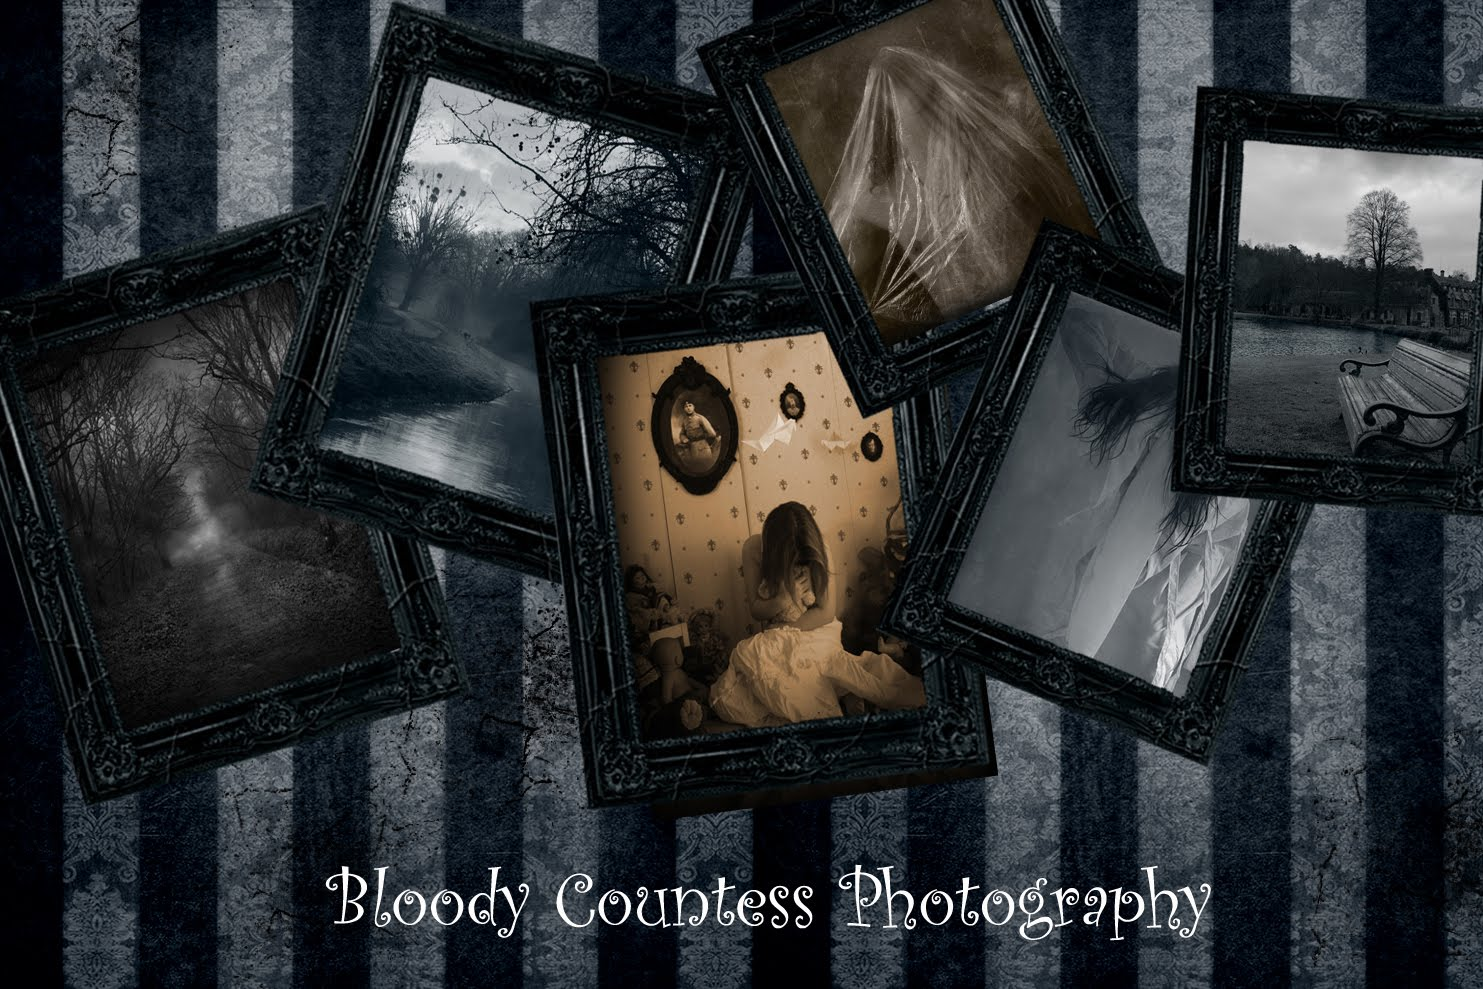 Bloody countess photos